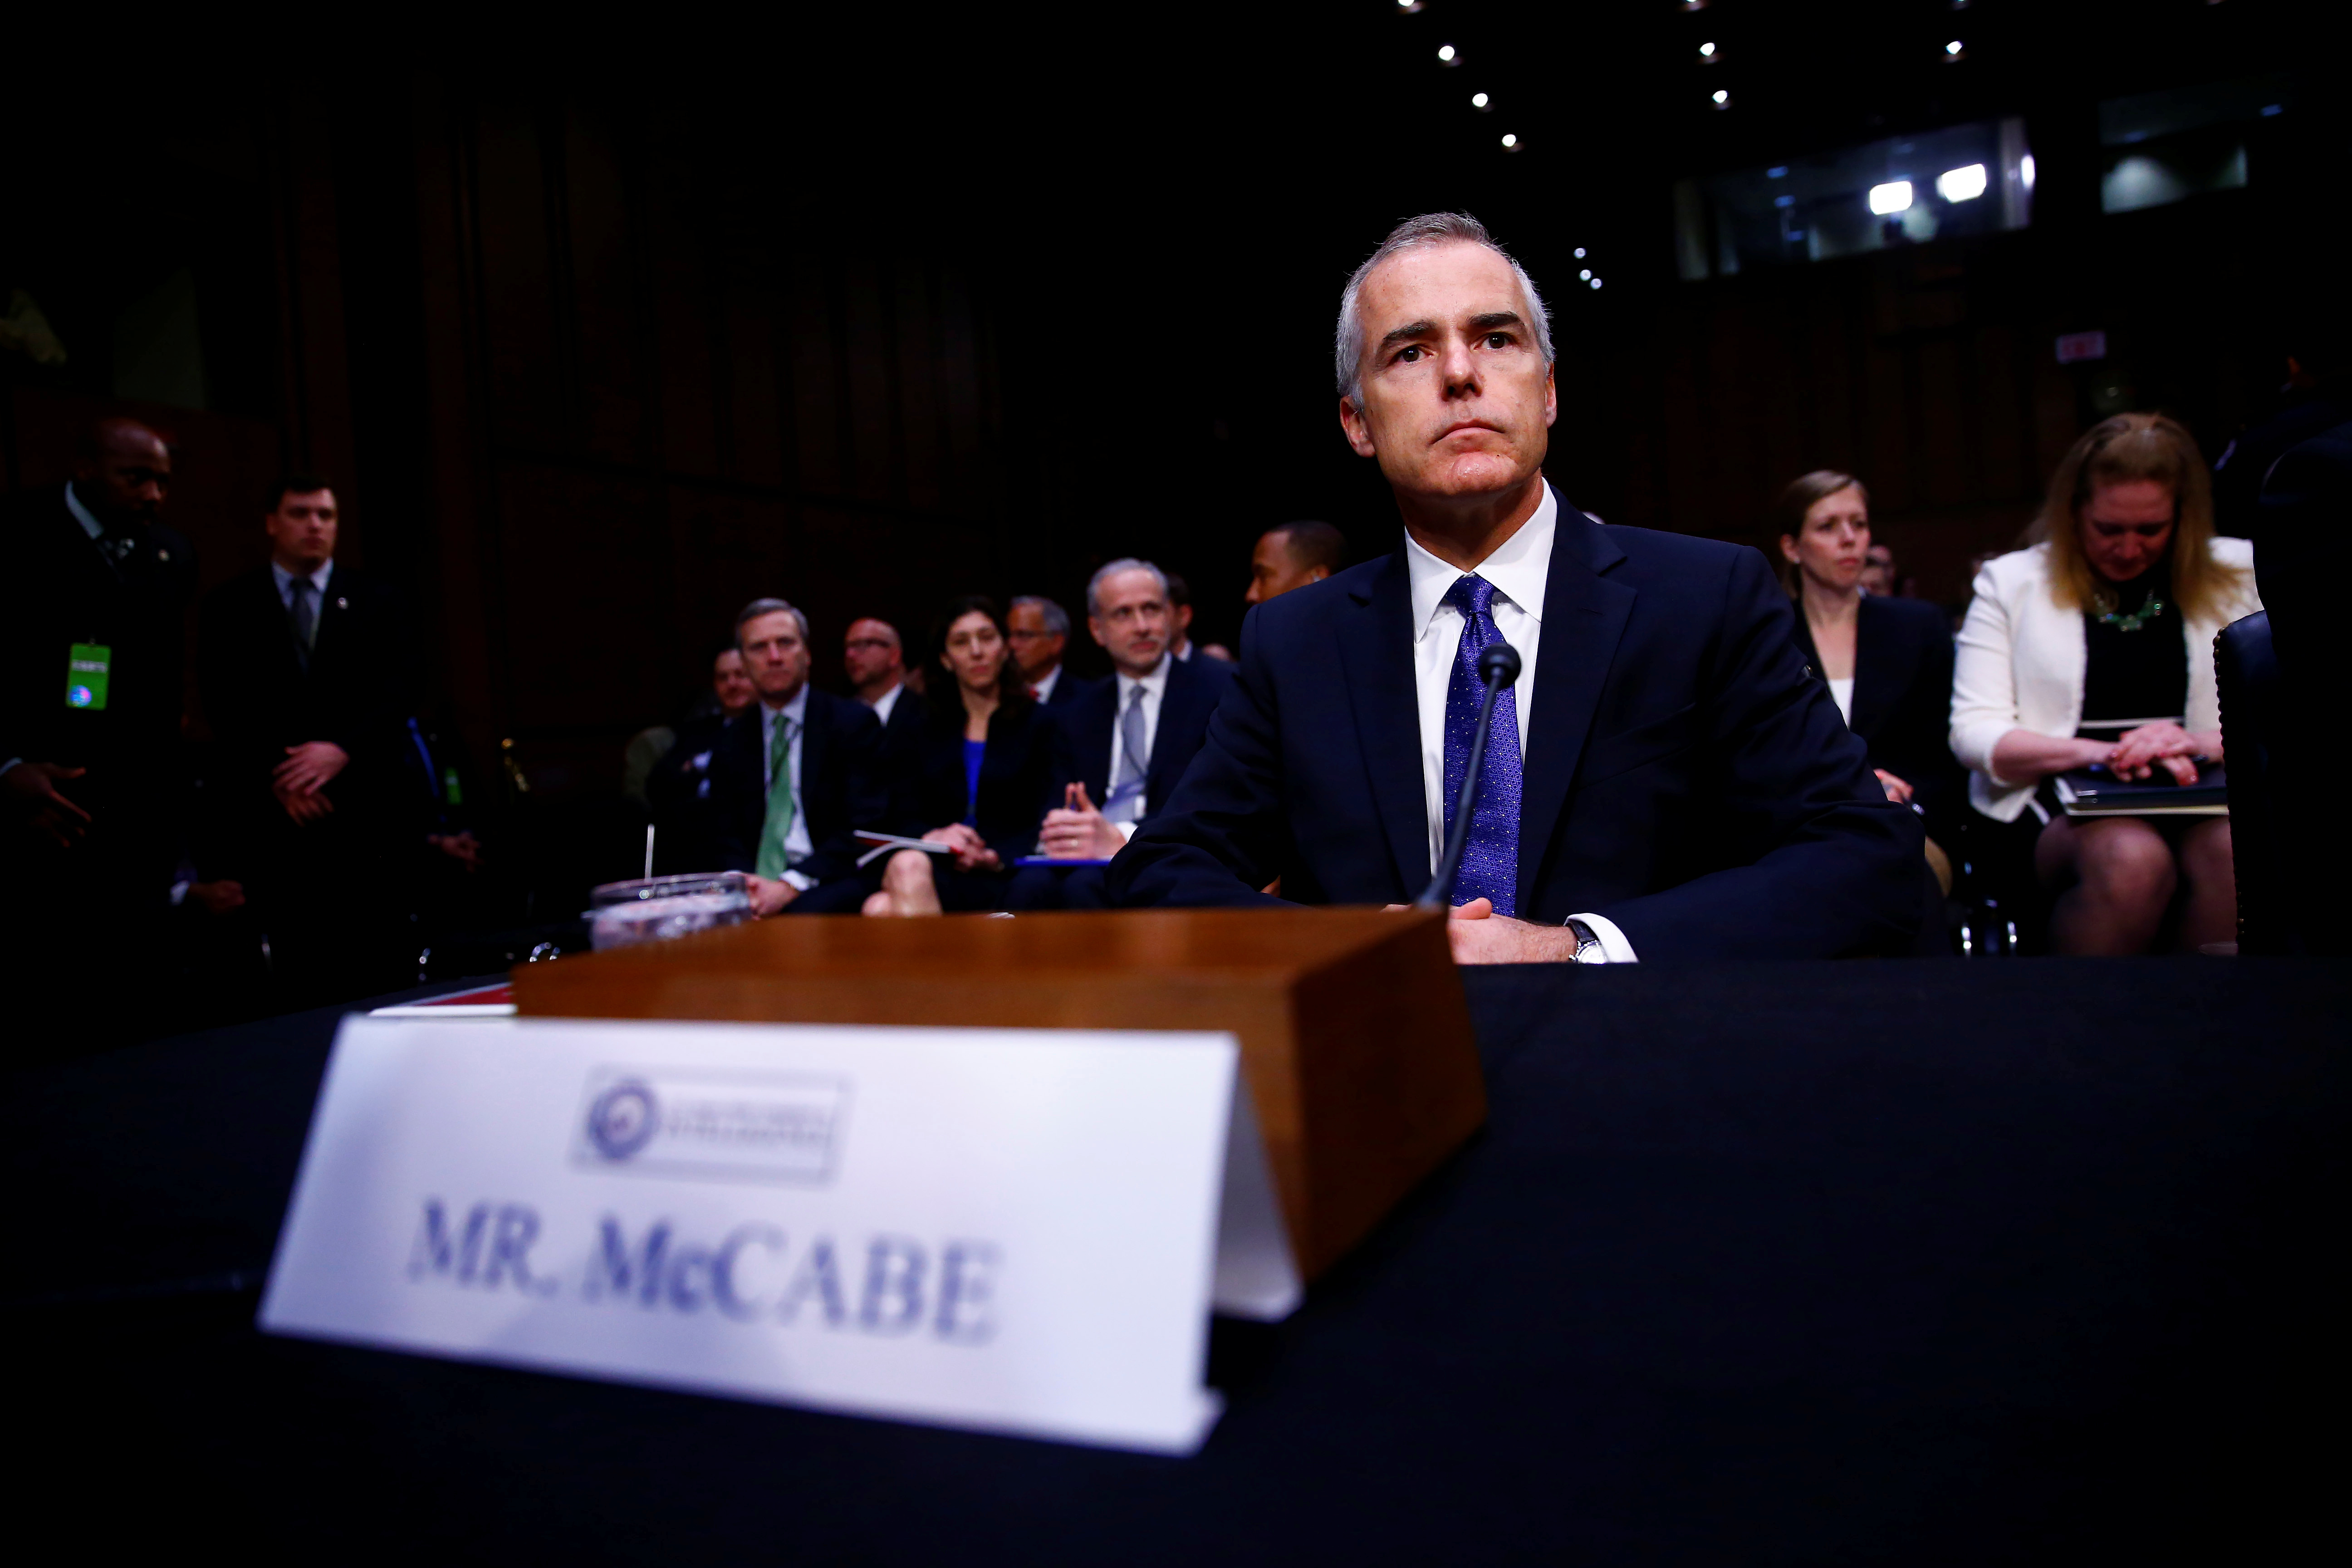 COSMO  Former FBI Deputy Director Andrew McCabe still has concerns after lawsuit settlement: 'I don't feel free'